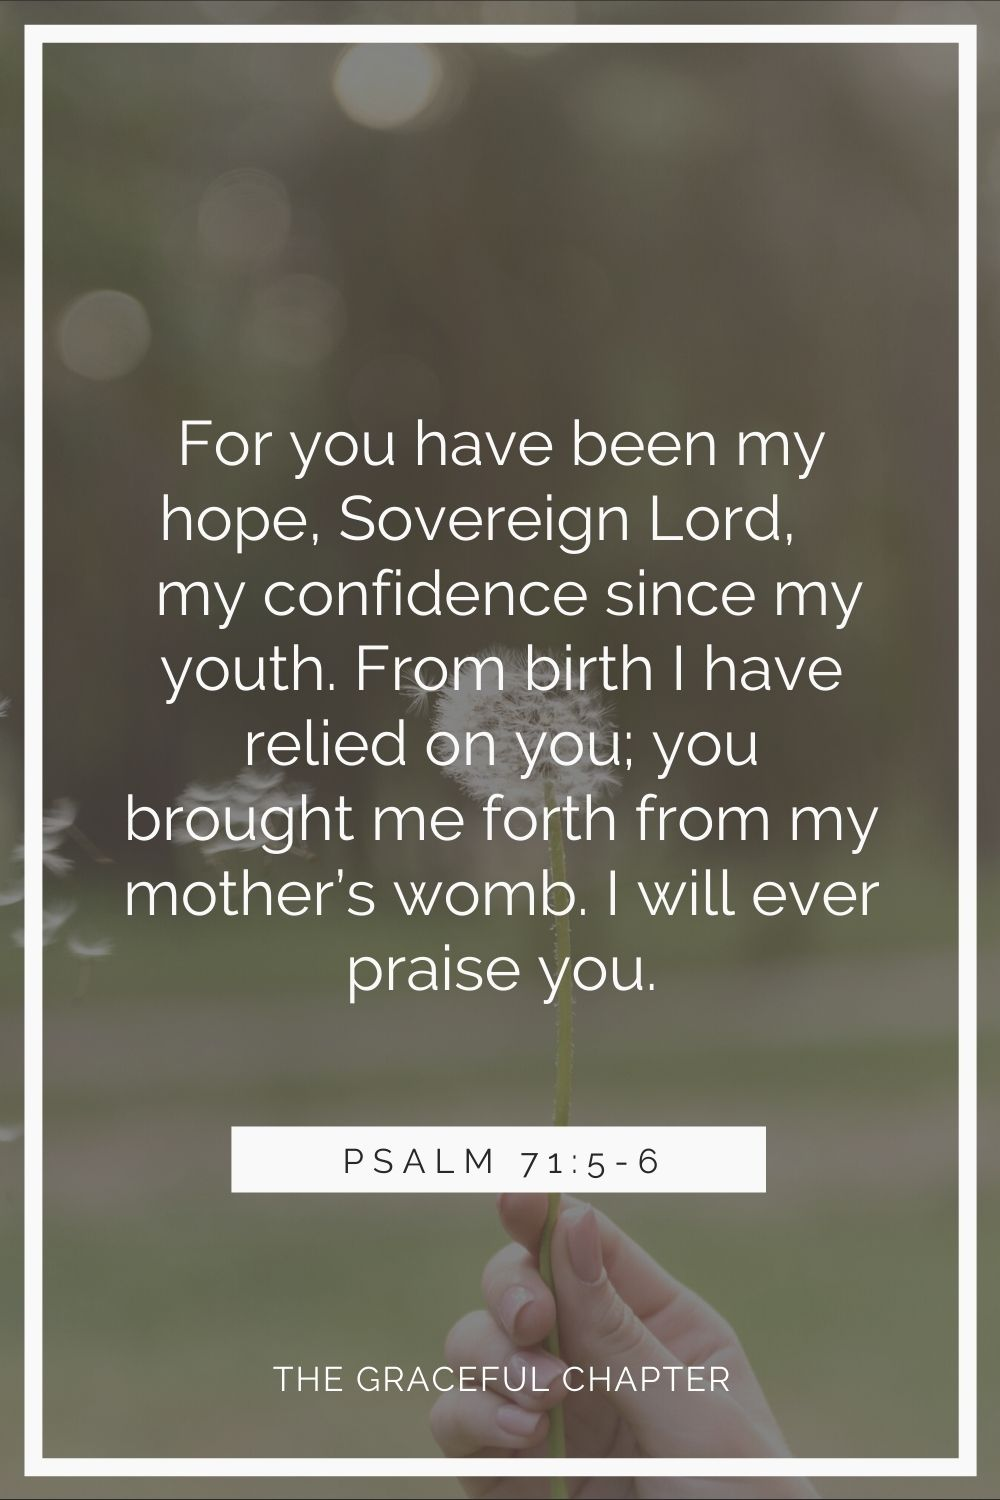 For you have been my hope, Sovereign Lord, my confidence since my youth. From birth I have relied on you; you brought me forth from my mother's womb. I will ever praise you. Psalms 71:5-6